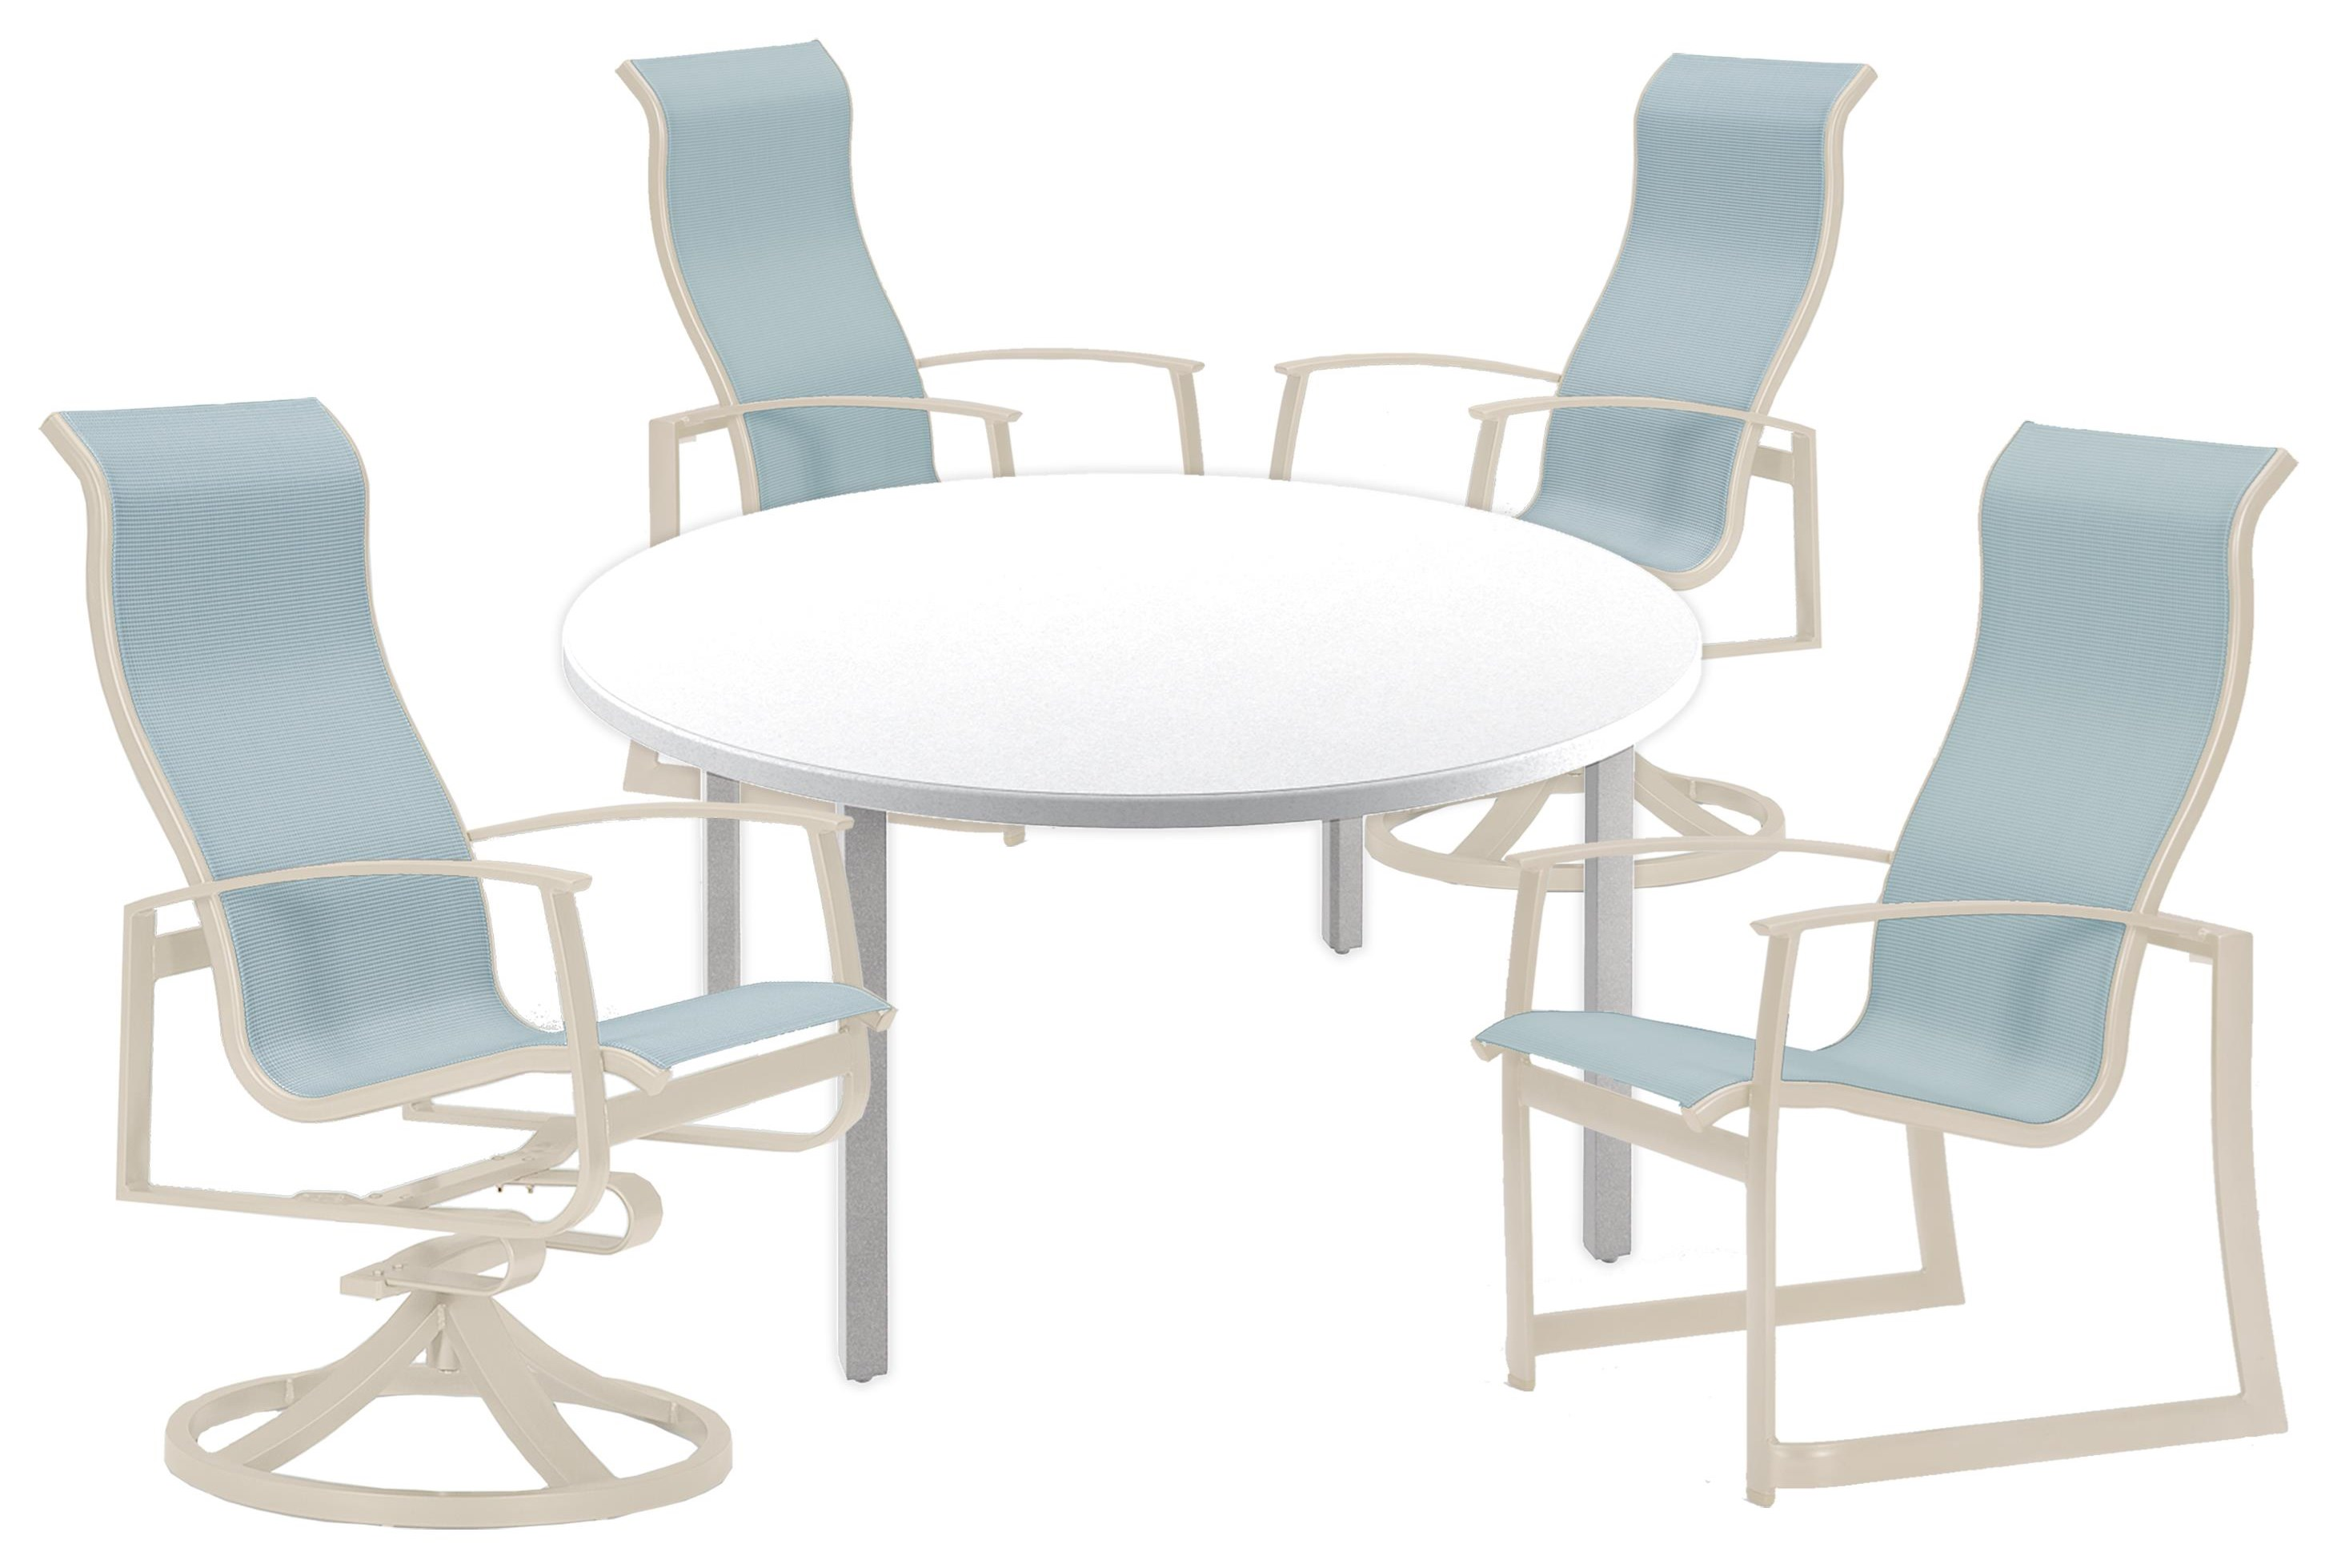 Mainsail 48 inch Table, 2 Dining and, 2 Swivel Chairs by Tropitone at Johnny Janosik